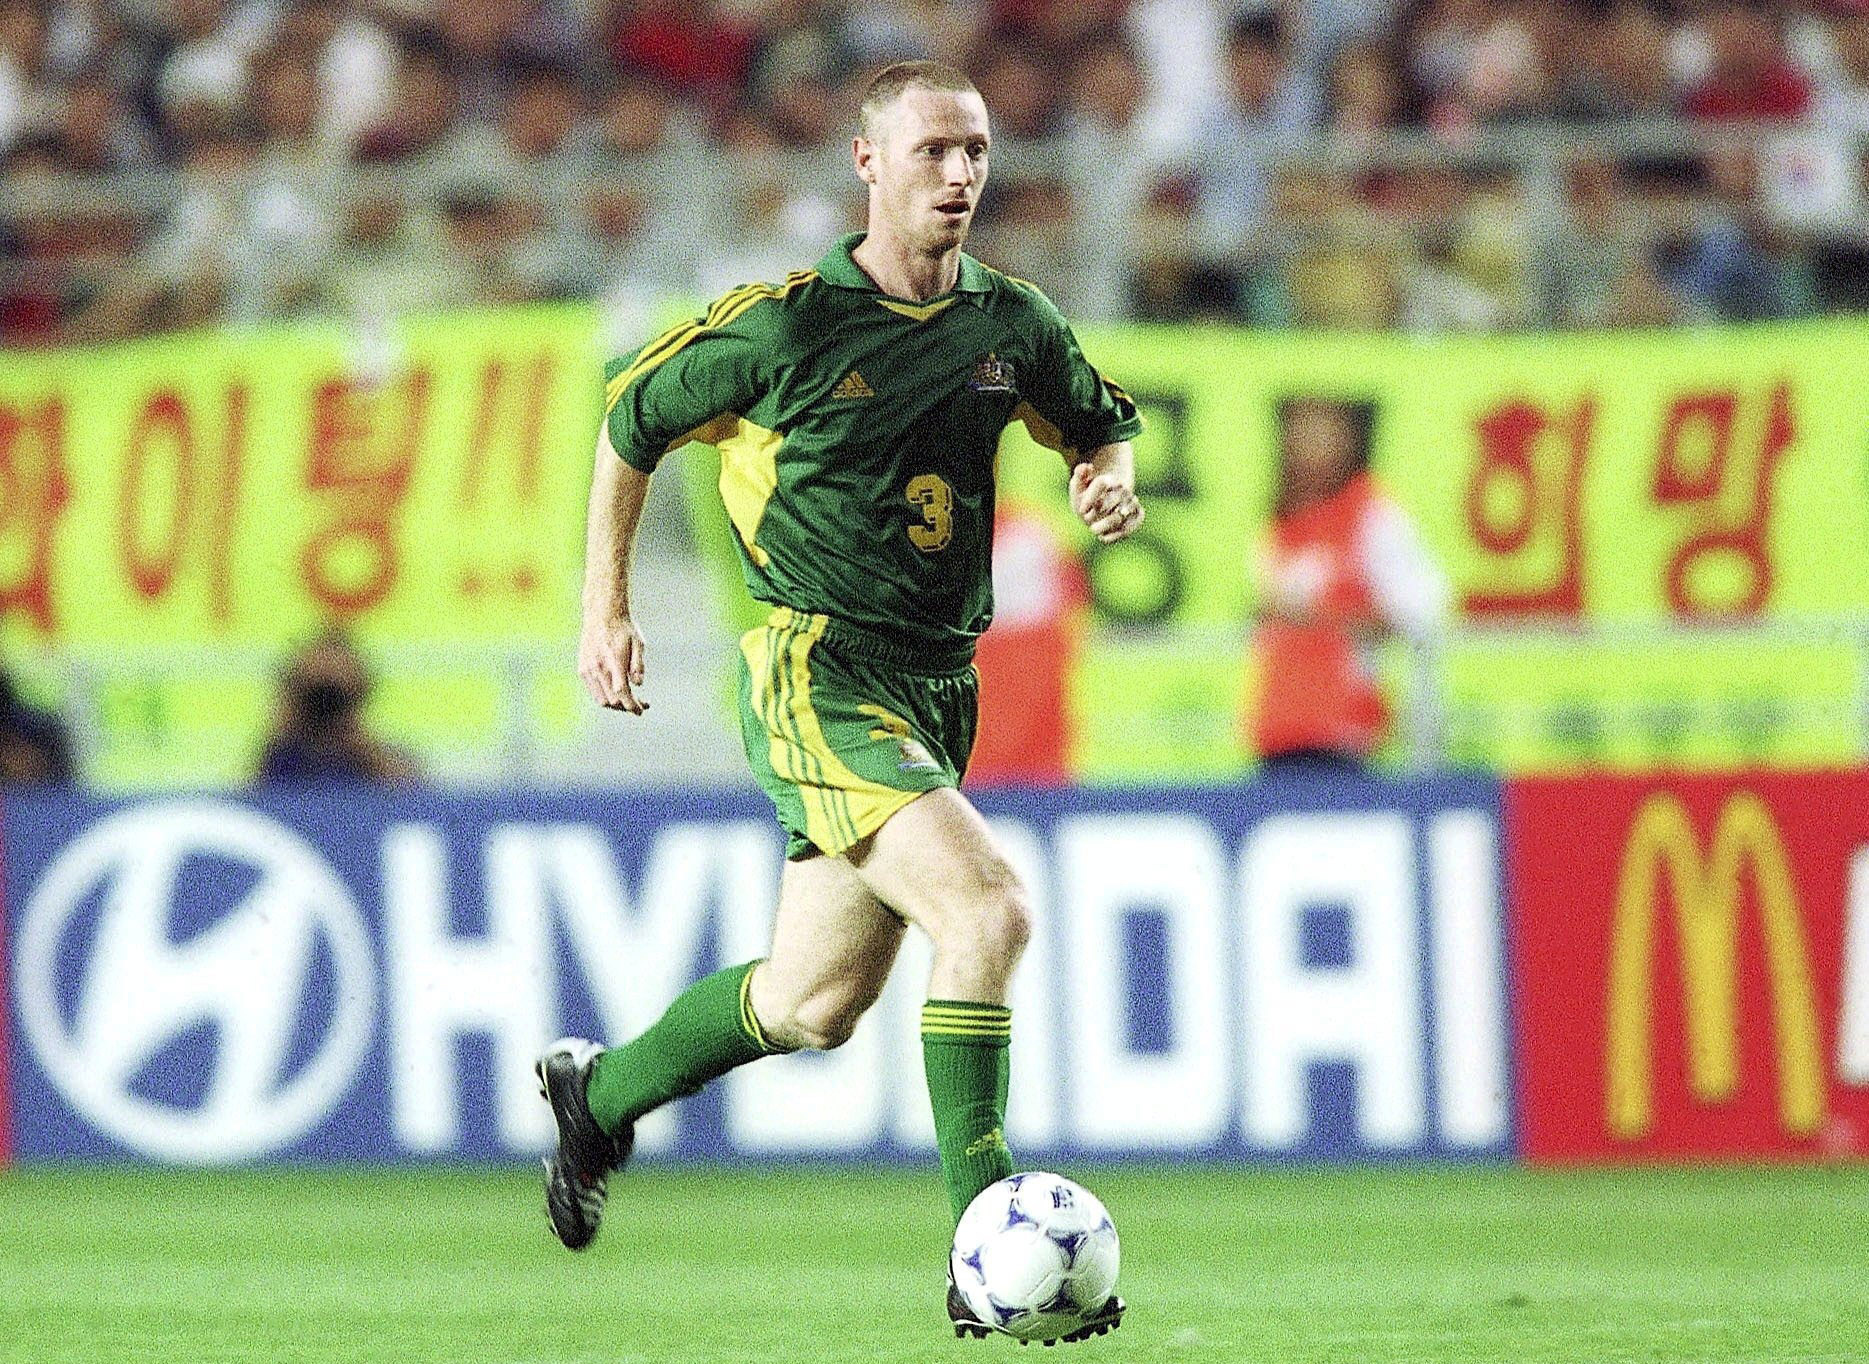 Craig Moore scored in Australia's 3-0 win over Hungary in 2000.